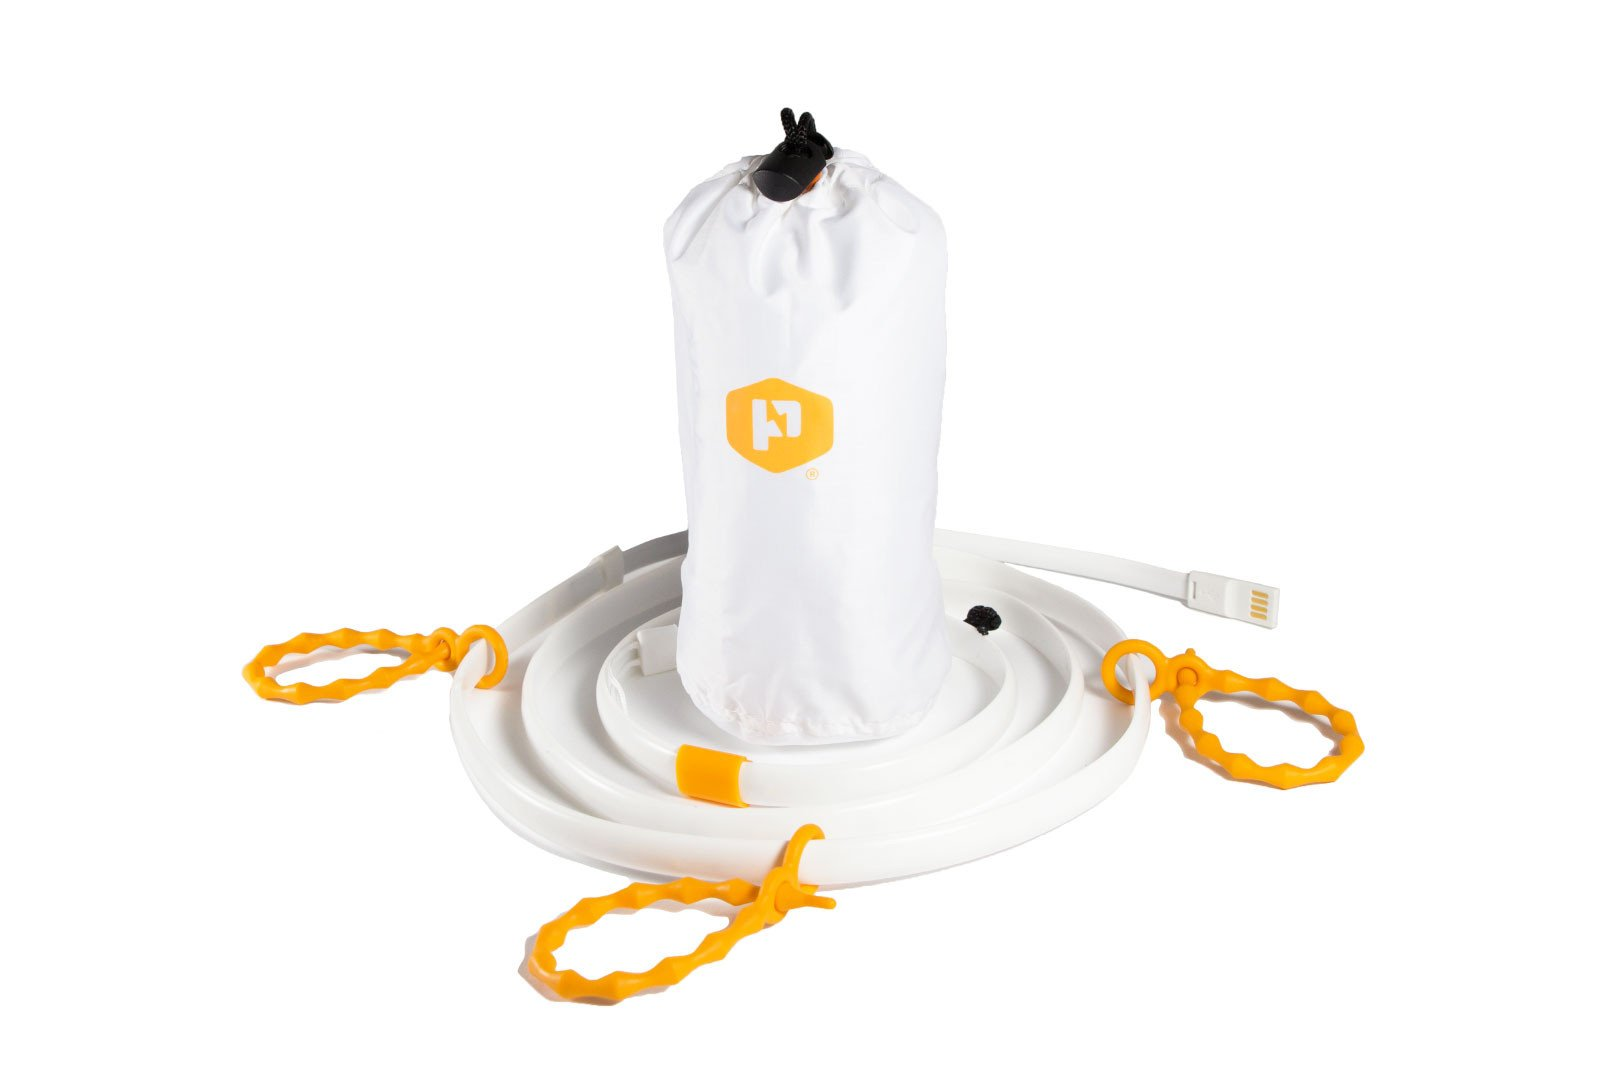 Luminoodle Led Rope Lights For Camping Hiking Safety Emergencies - Portable L.. 12